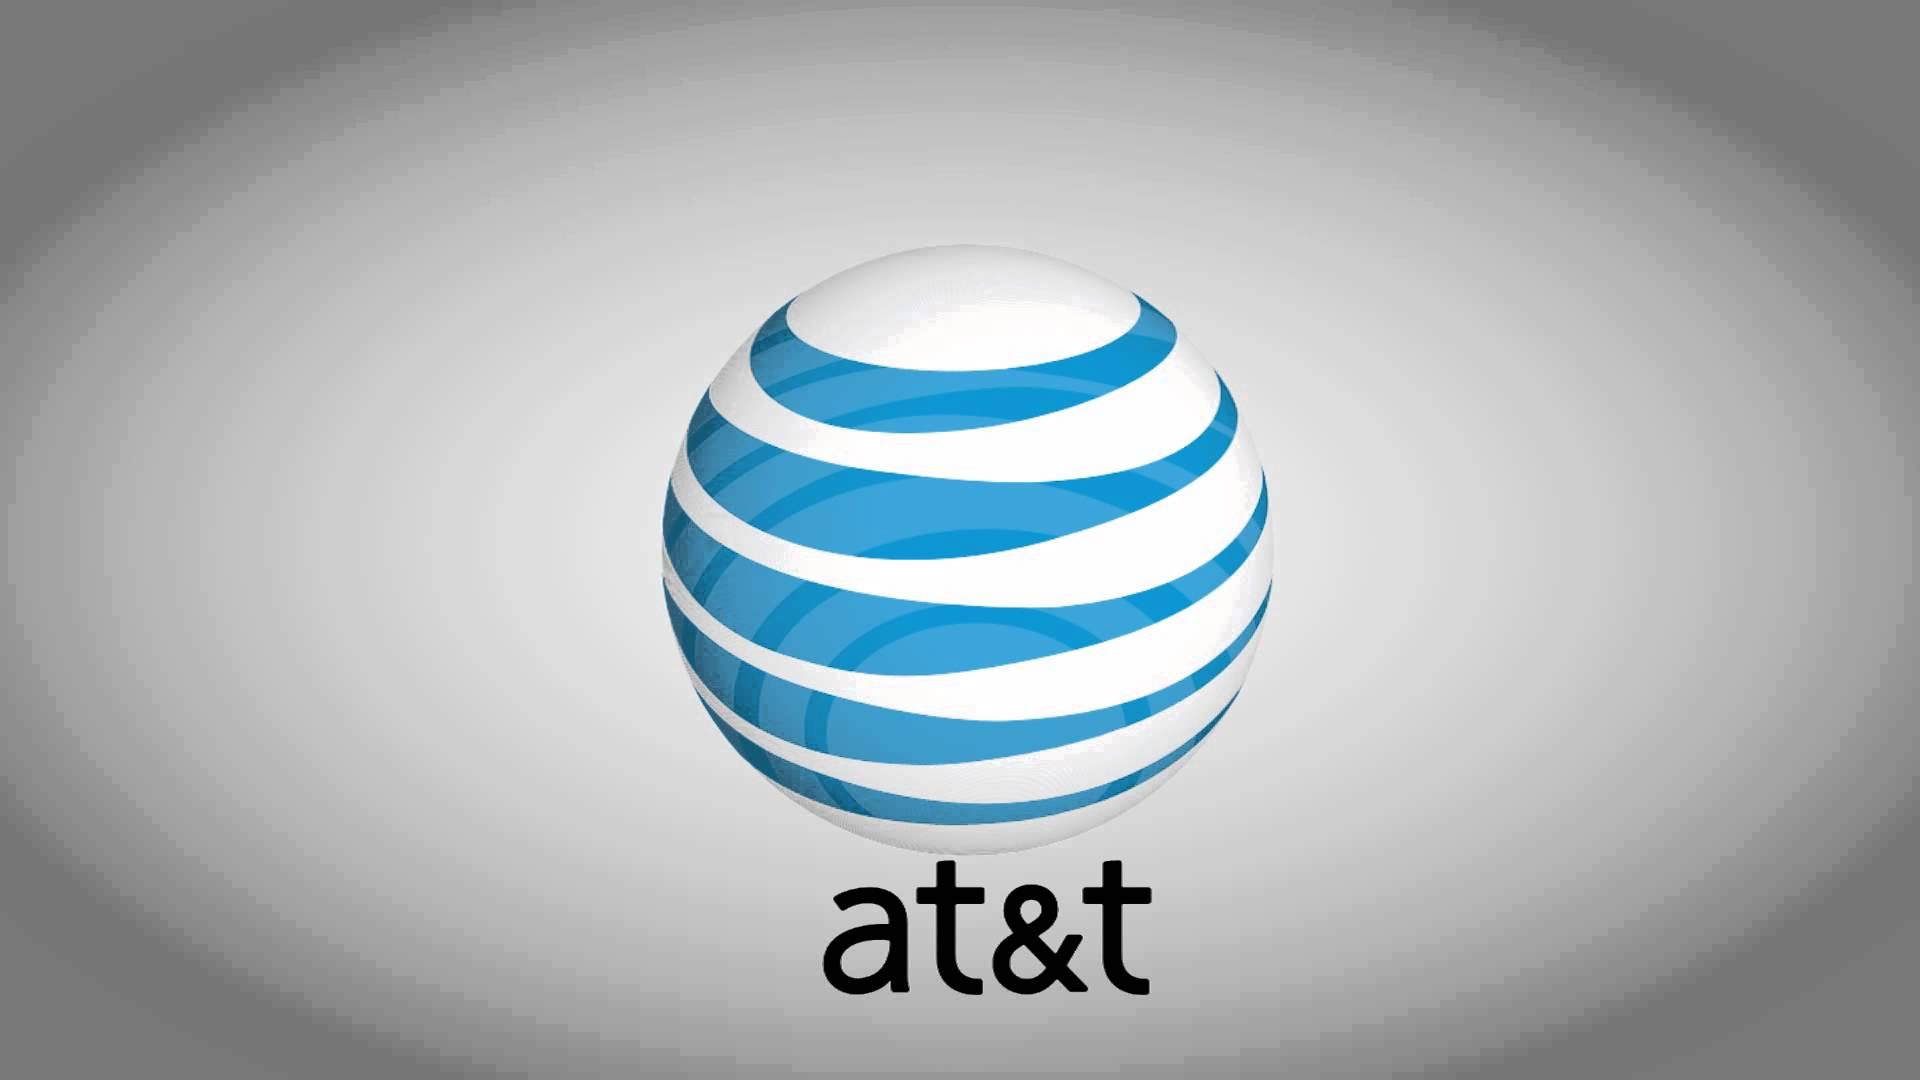 AT&T Inc. (NYSE:T) Spares...